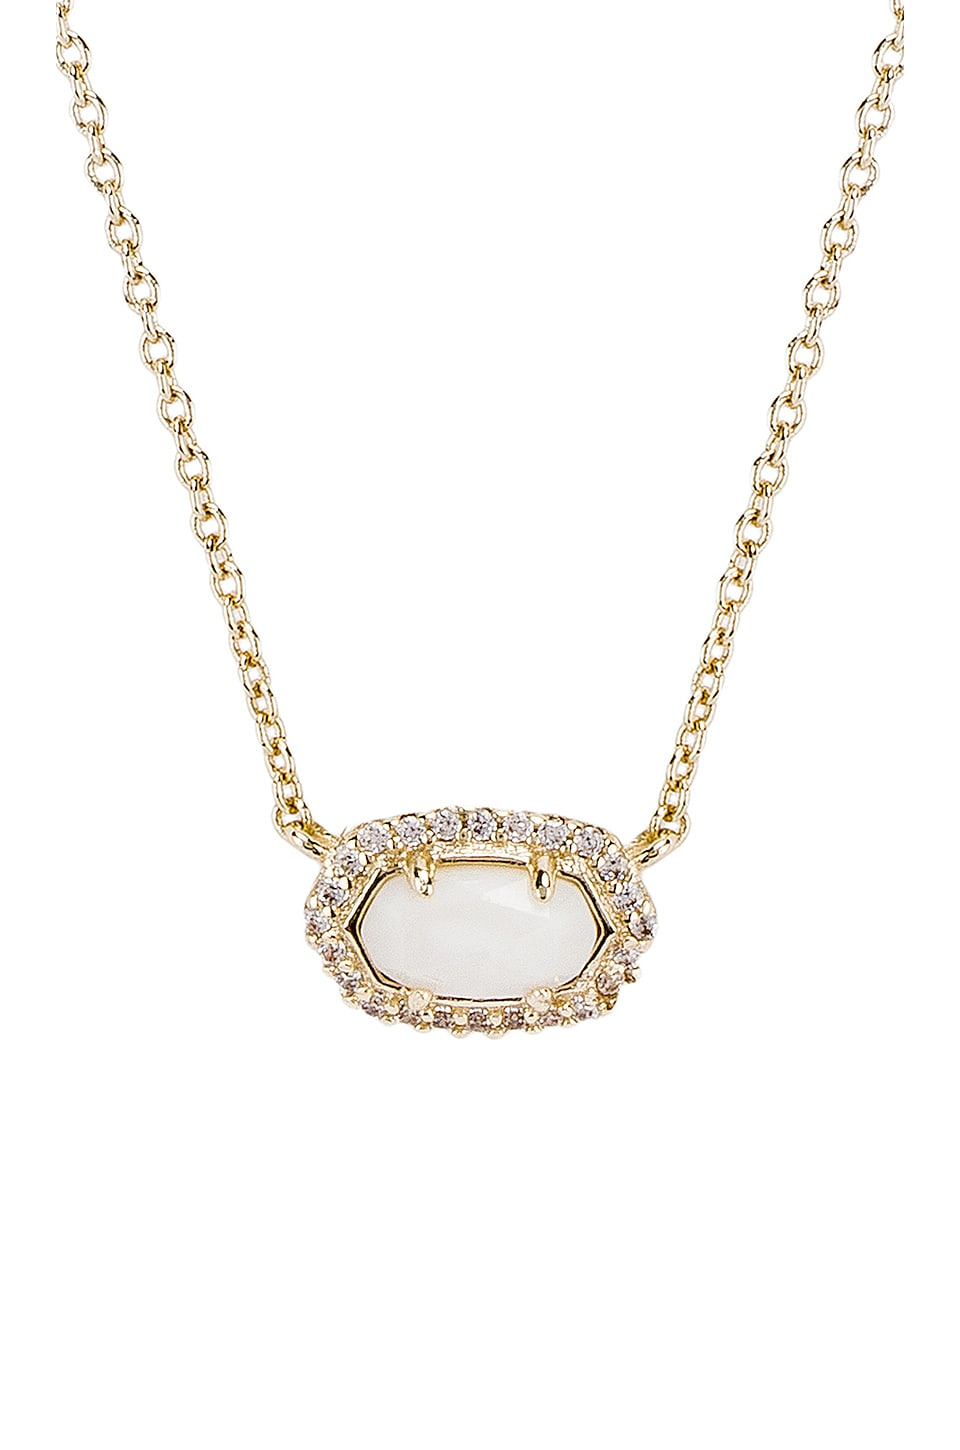 Kendra Scott Chelsea Necklace in Gold & White Mother of Pearl